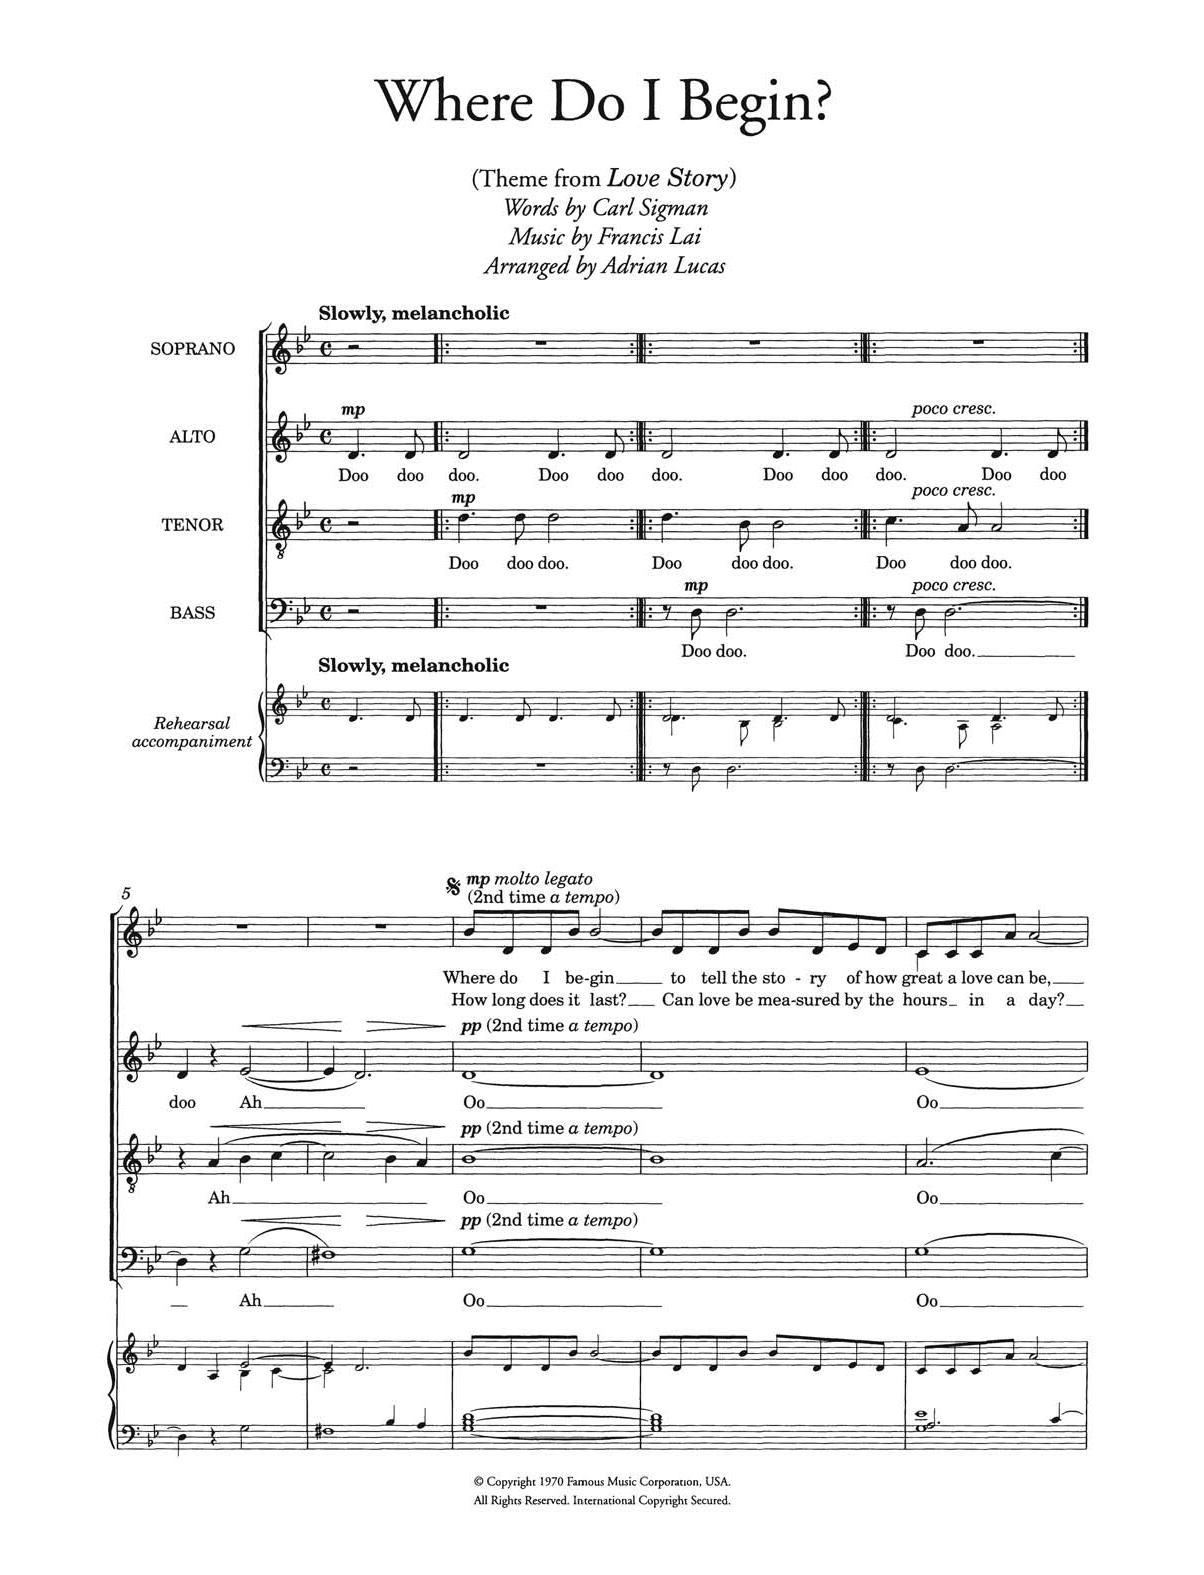 Francis Lai - Where Do I Begin (theme from Love Story) (arr. Adrian Lucas)